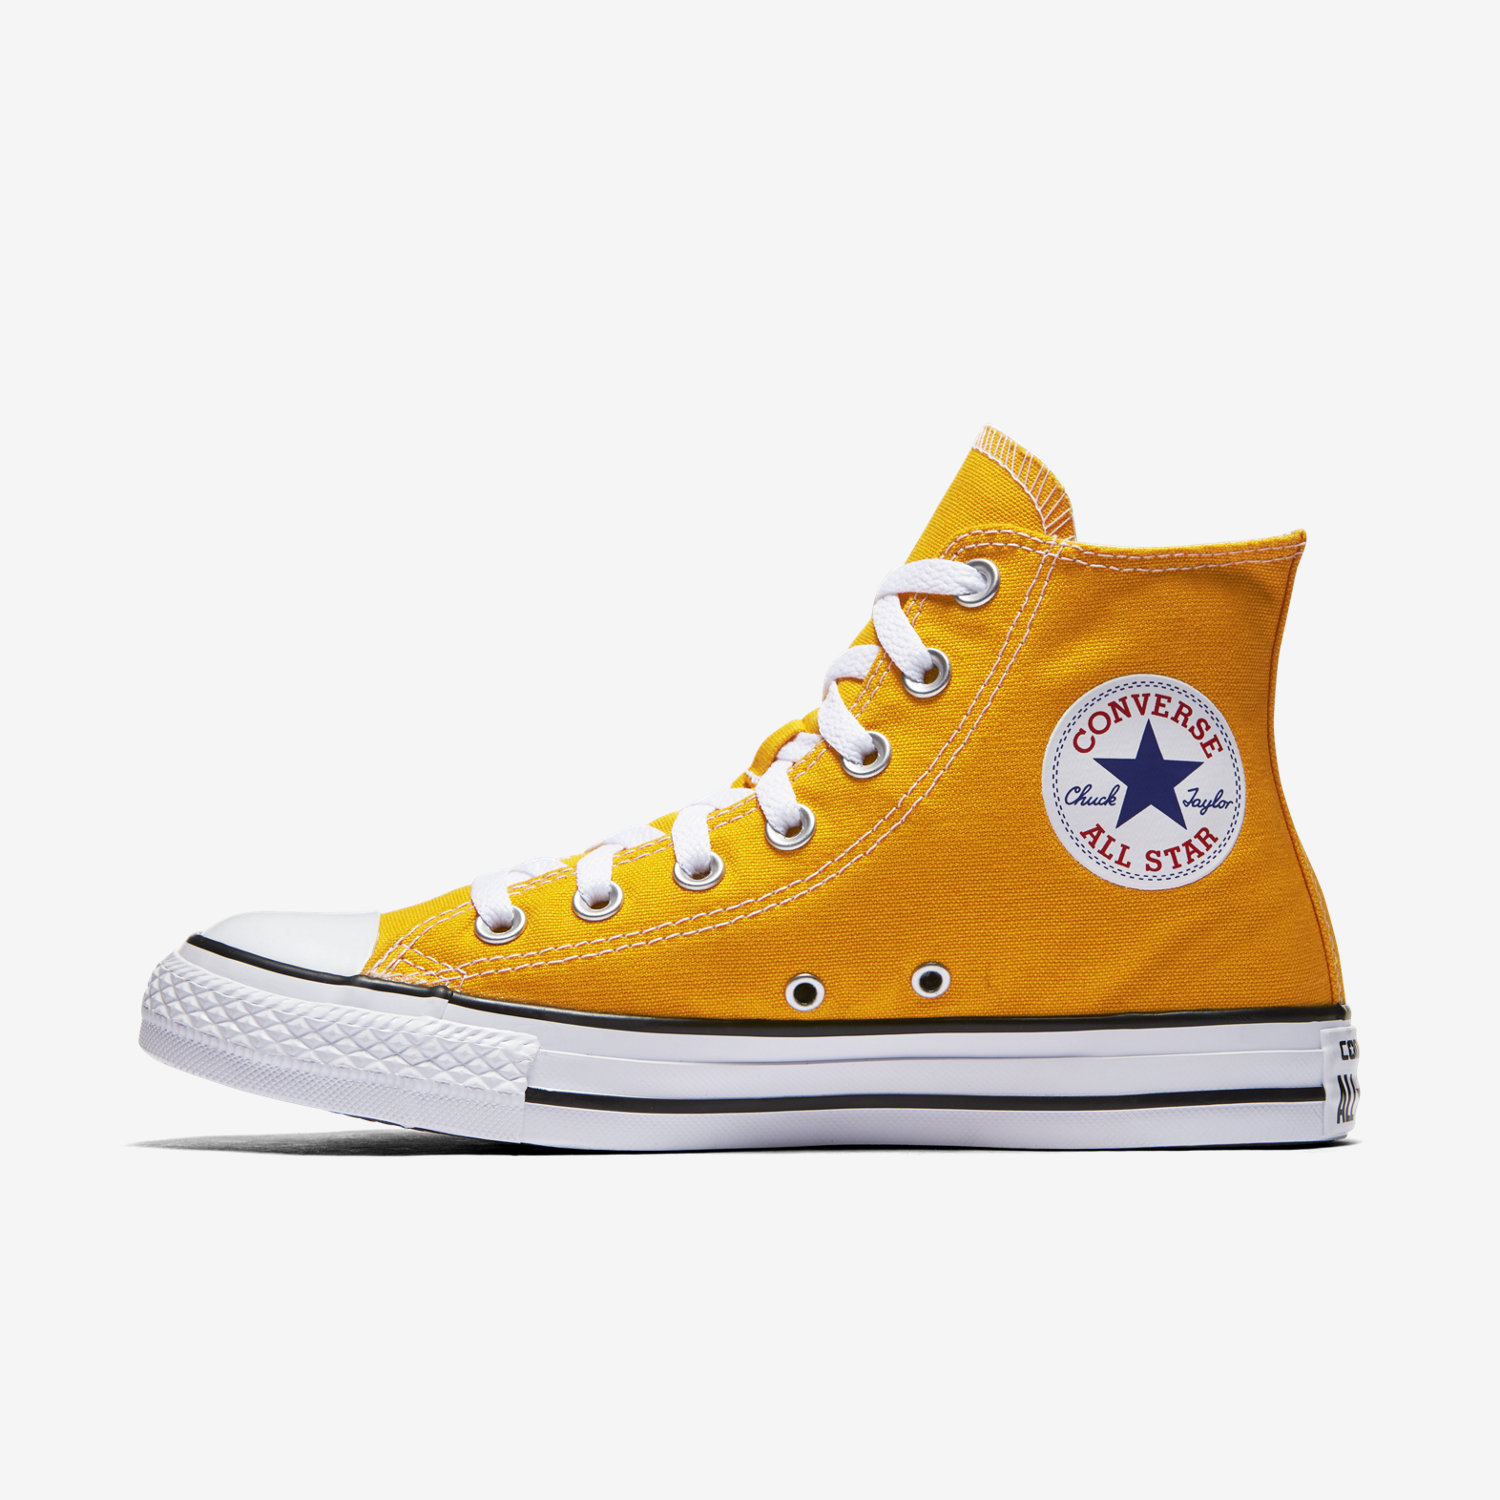 womens orange converse chuck taylor all star seasonal high top shoes | QDOVALR